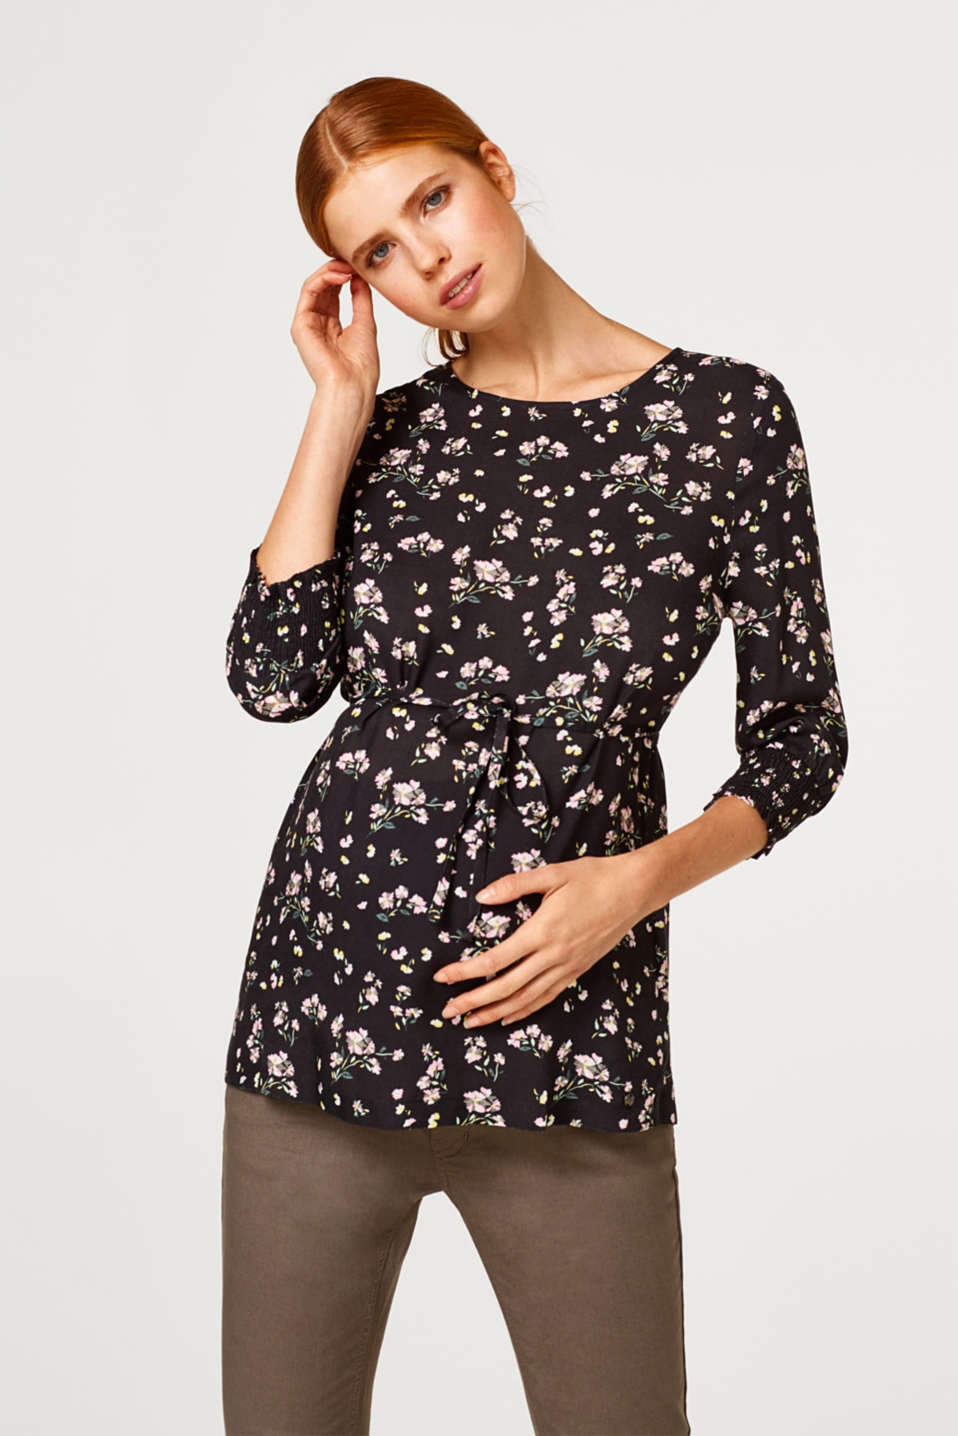 Esprit - Printed blouse with smocked sleeves